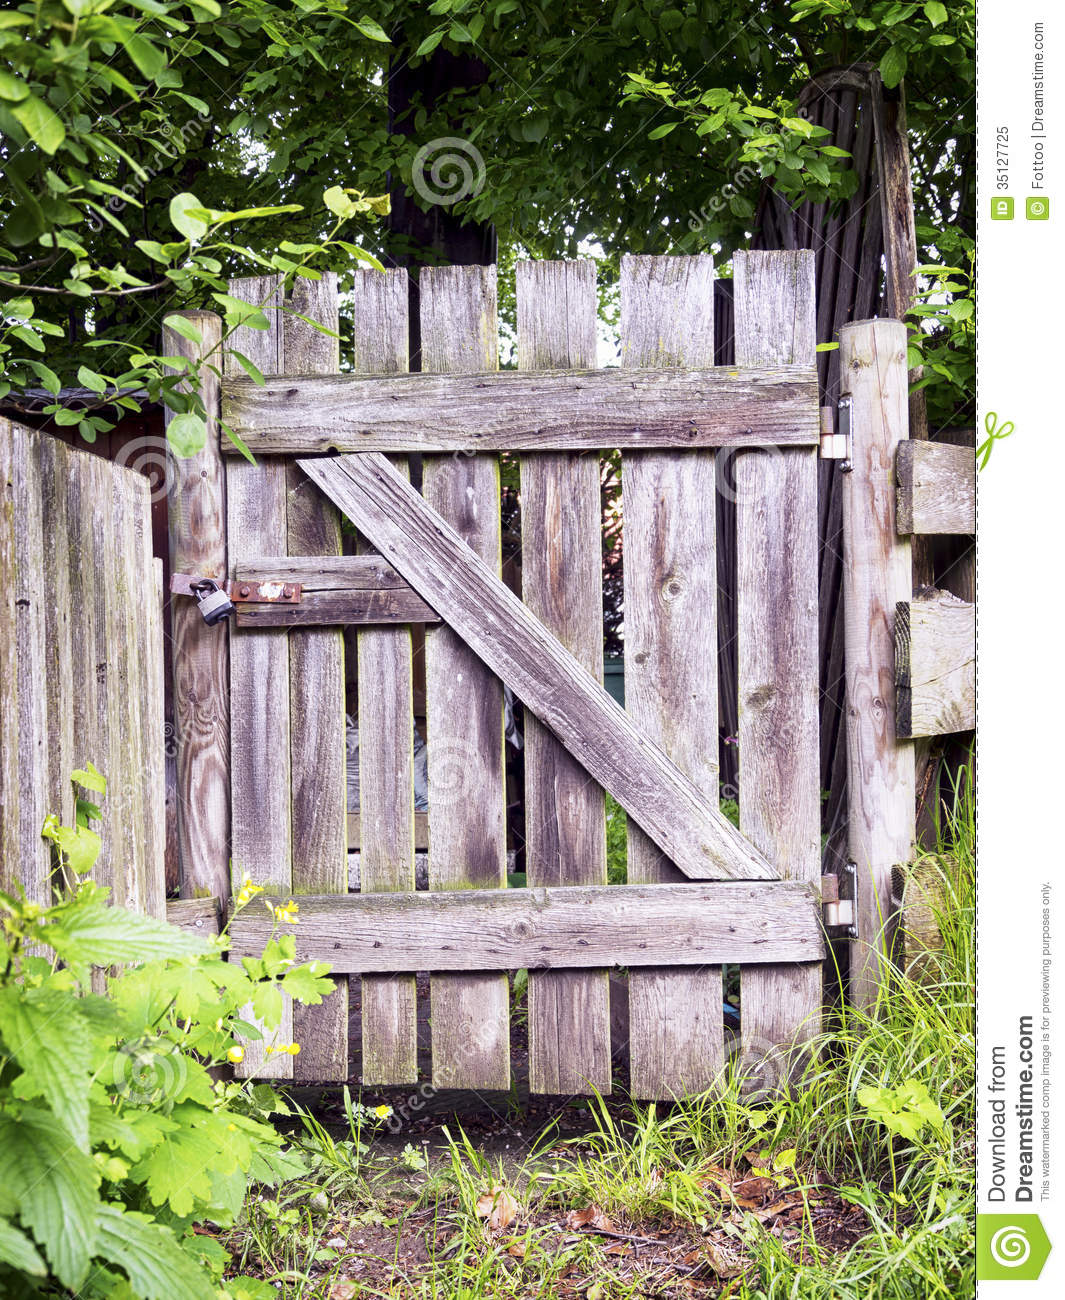 Images Of An Old Fashioned Wooden Fence And Gate